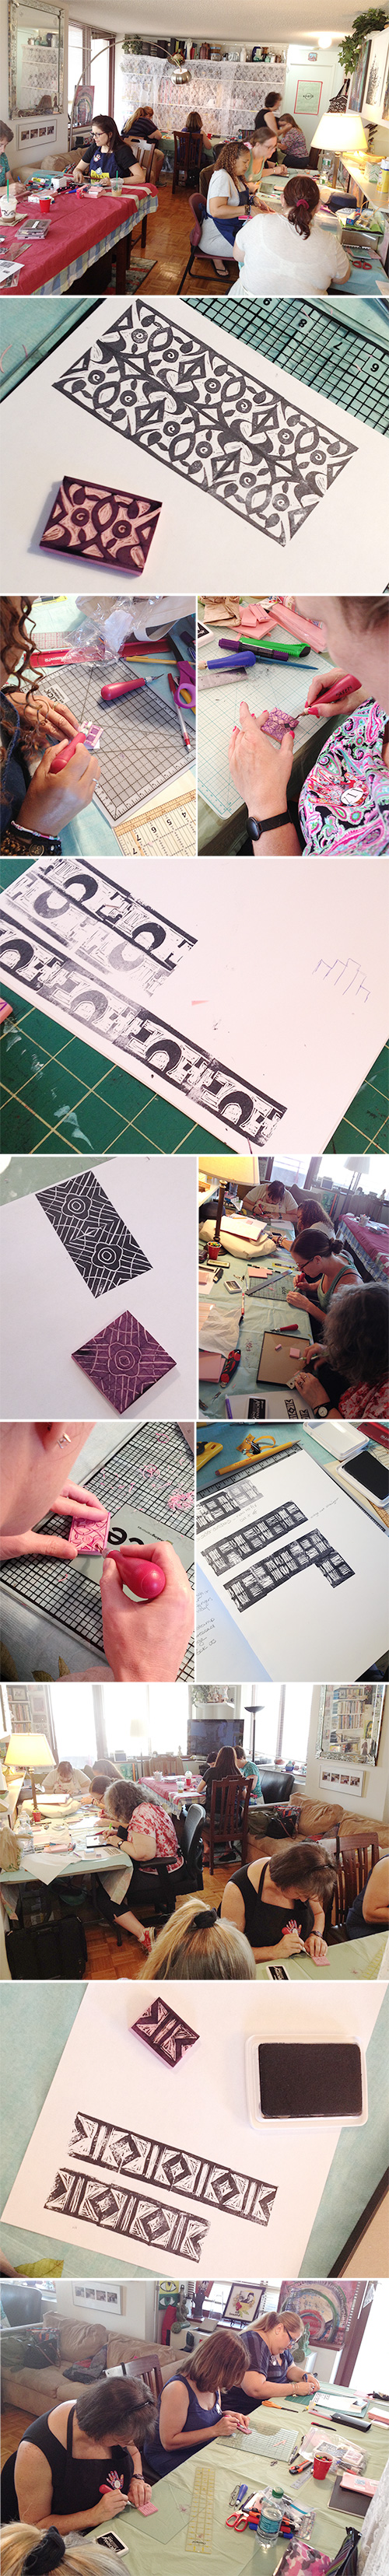 from the Balzer Designs Blog: Carving Stamps for Patterning Class #stampcarving